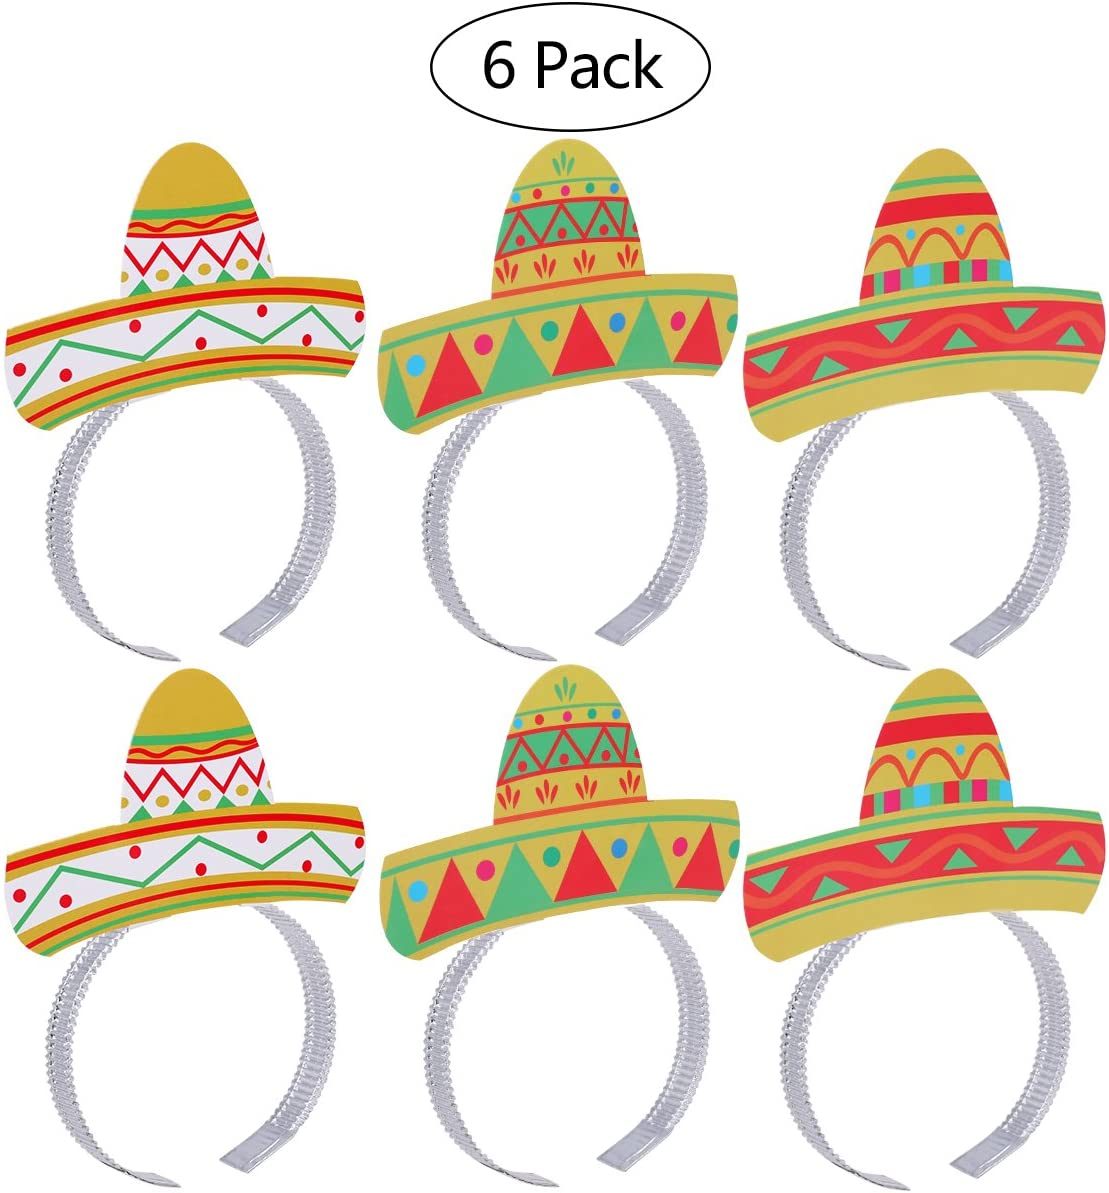 Tinksky Cinco De Mayo Fiesta Headband Party Colorful Sombrero Headbands Accessories Party Supplies 6pcs Pack